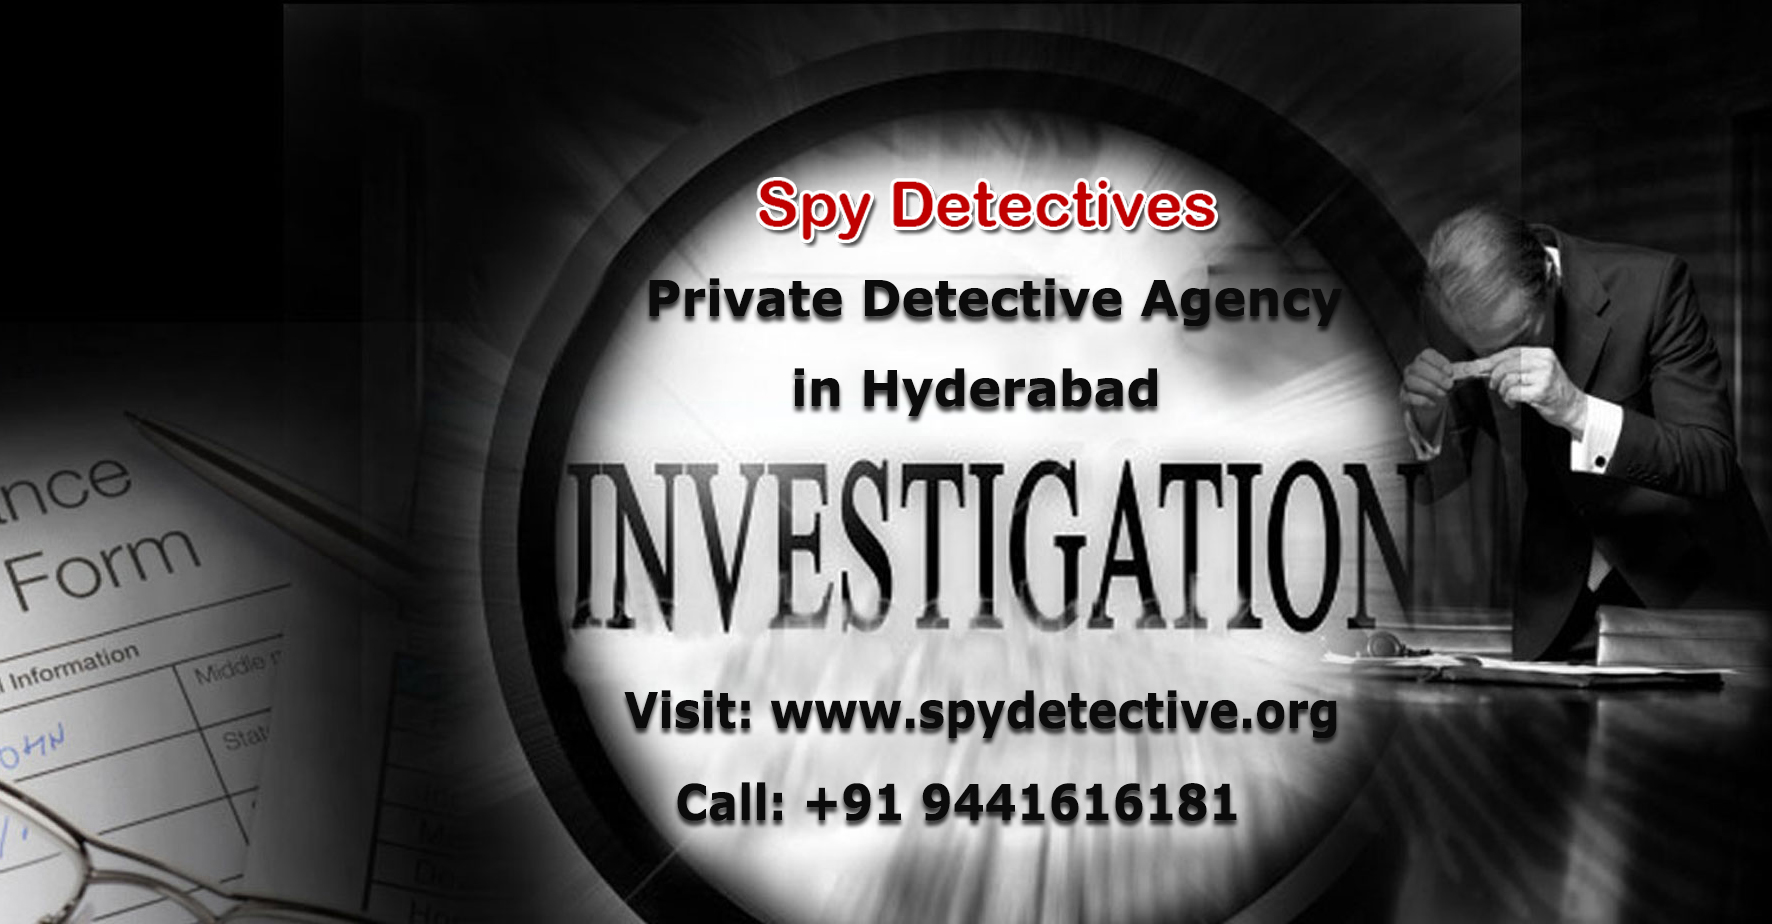 Image for Private Detective Agency in Hyderabad - Spy Detective